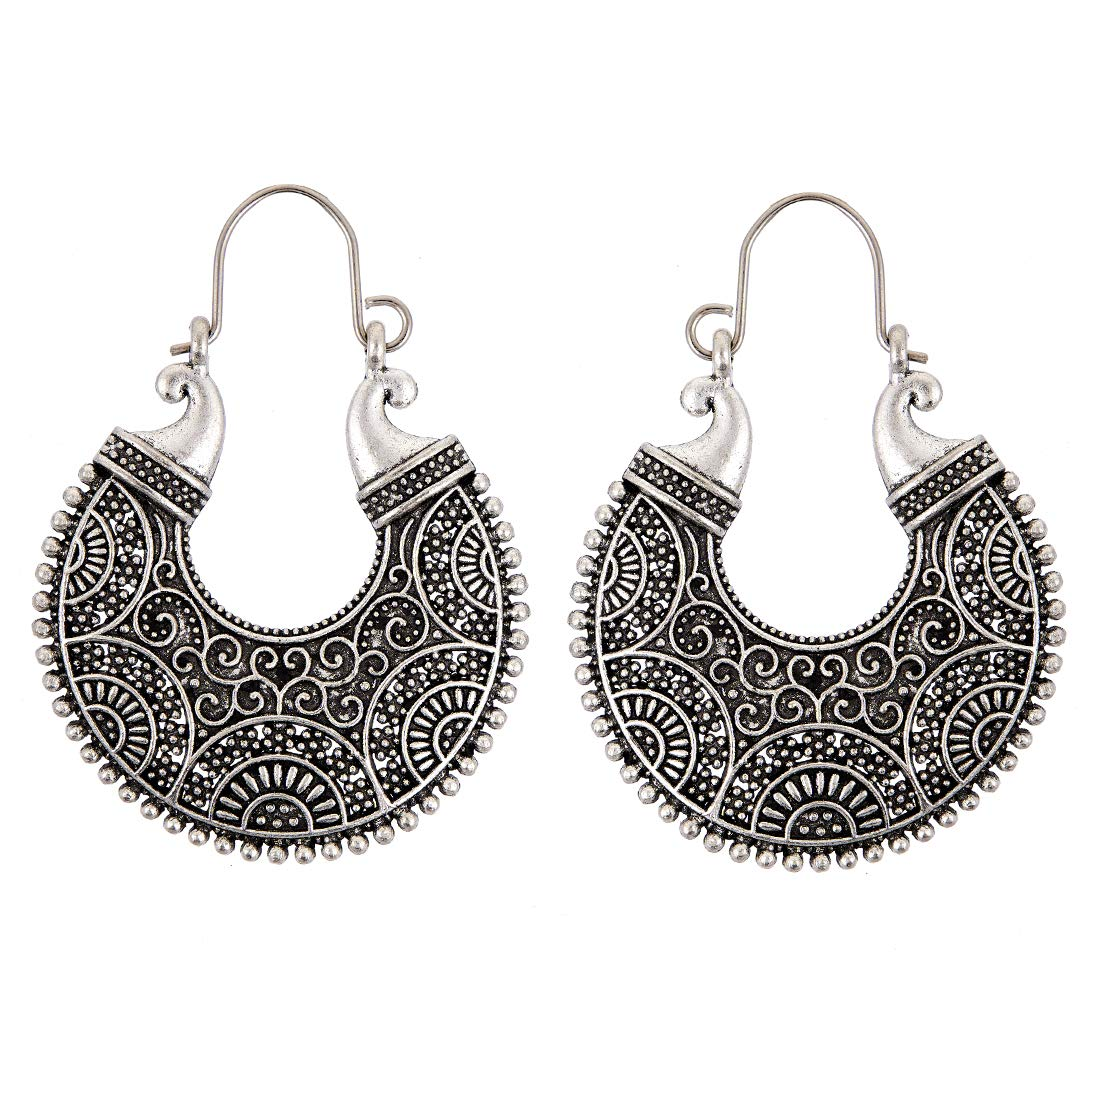 Oxidized Silver Hoop and Dangle Earring